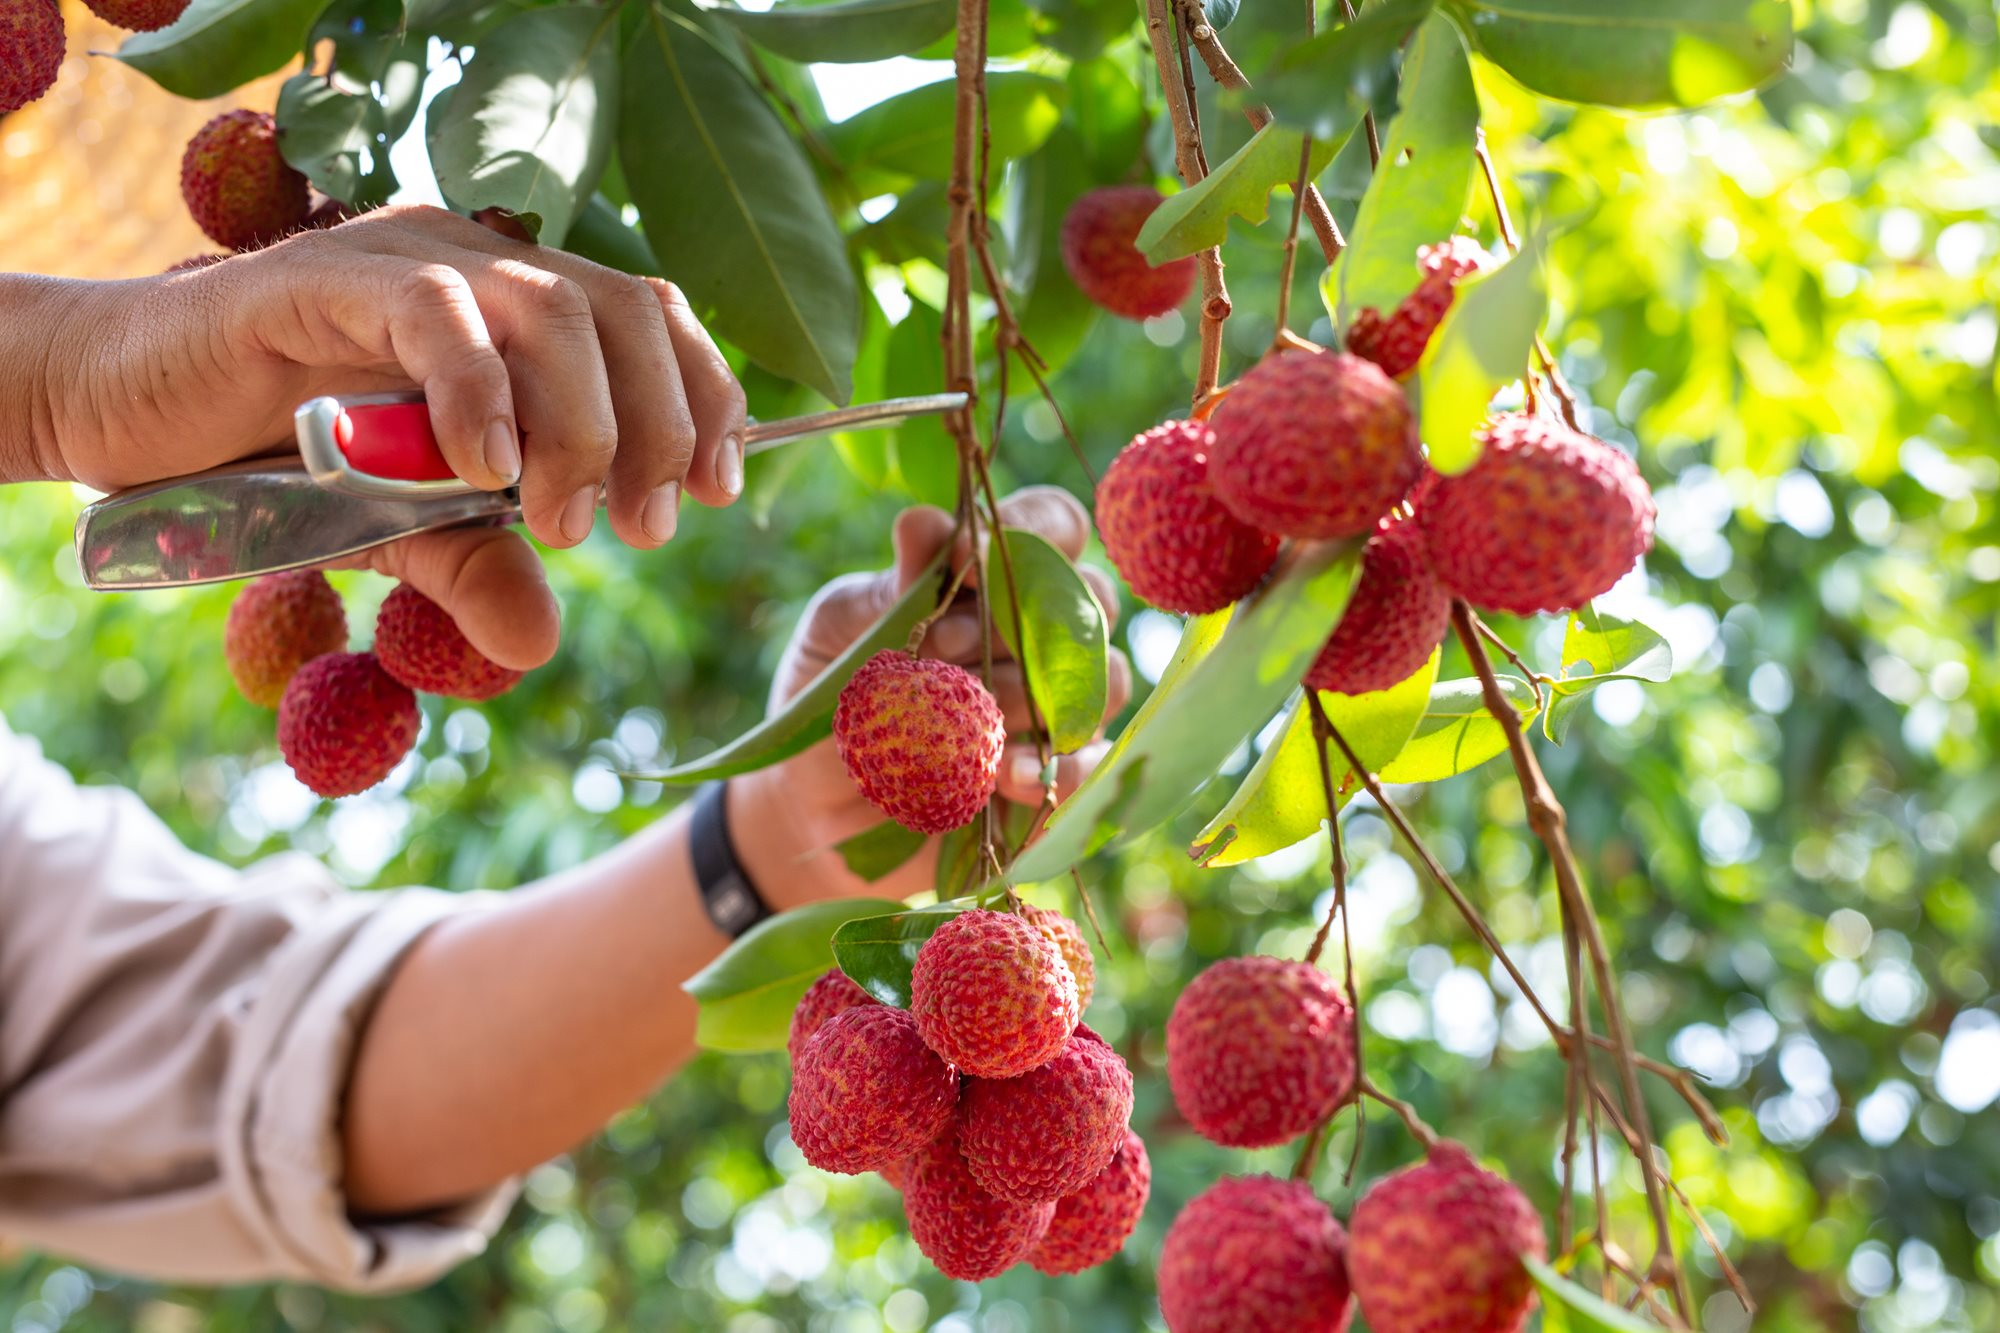 agriculture-lychee-fruit-thailand.jpeg